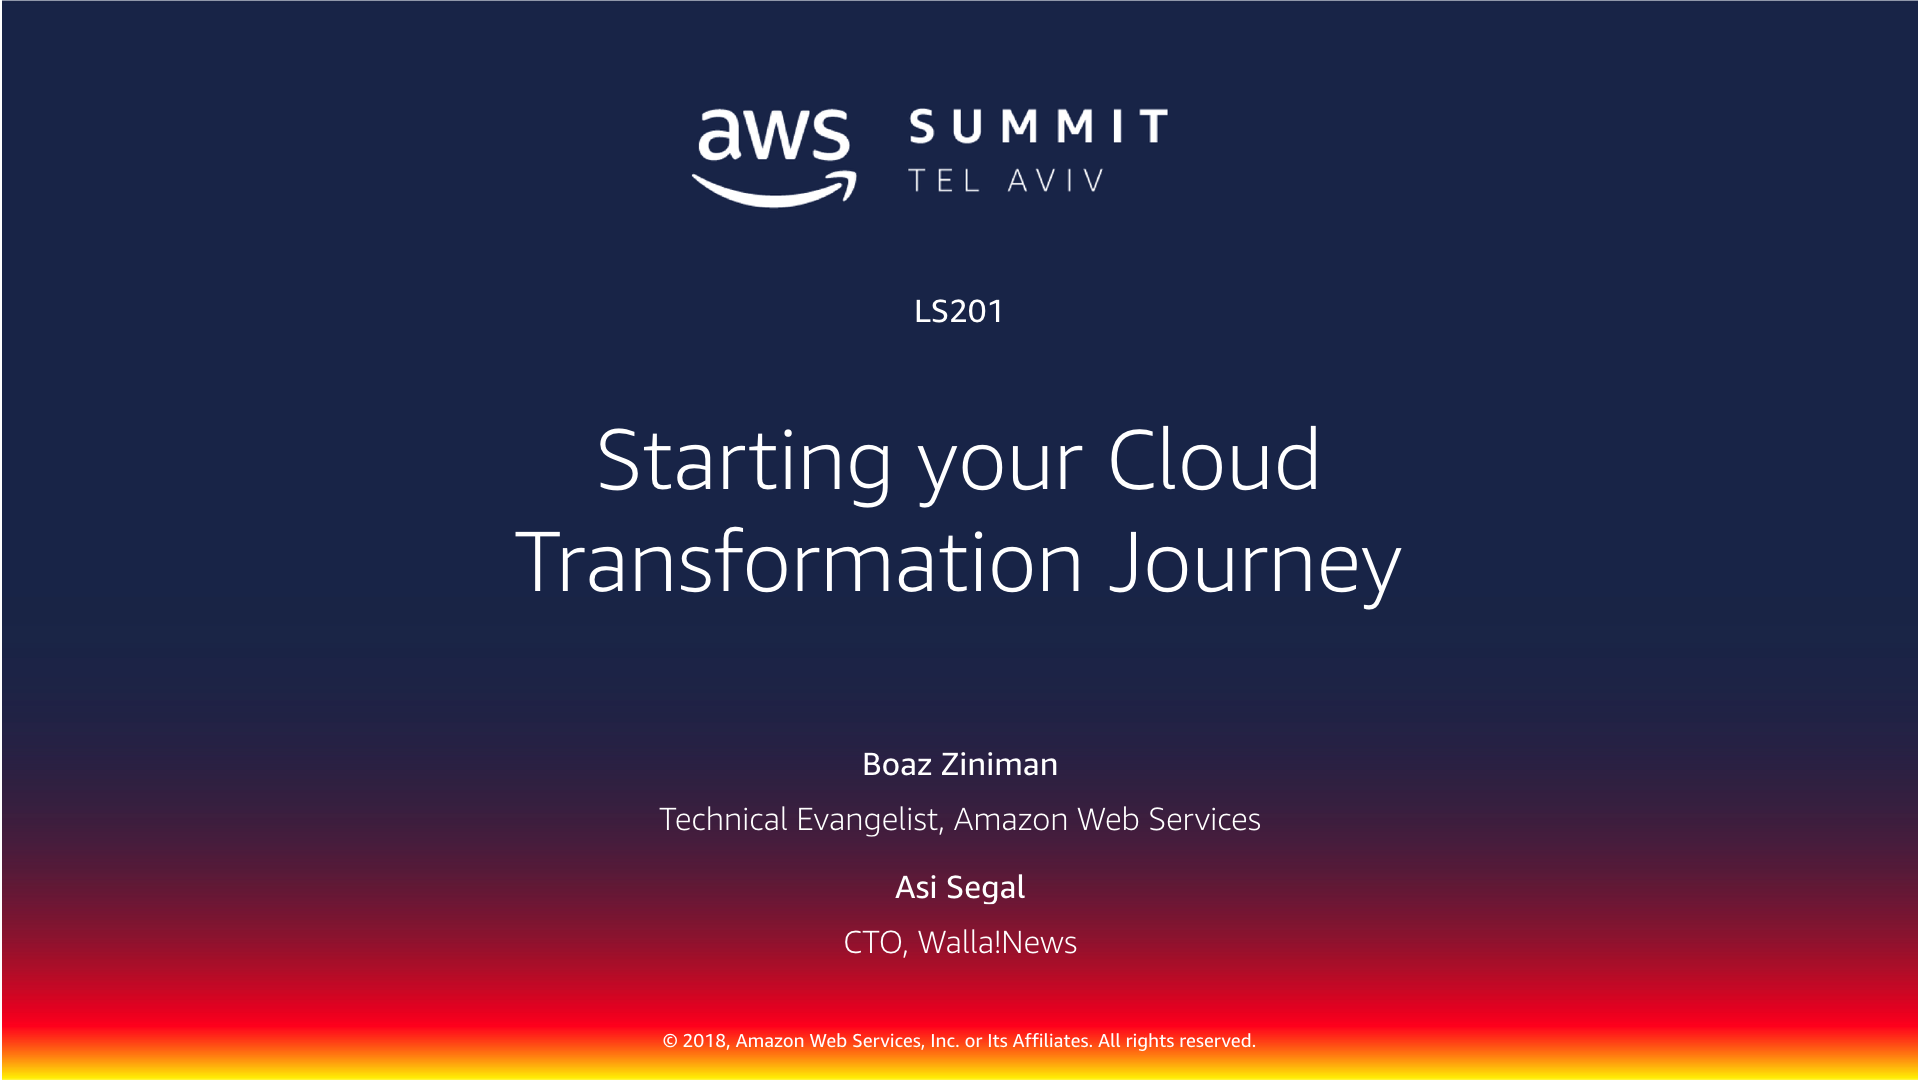 Starting your Cloud Transformation Journey - Tel Aviv Summit 2018